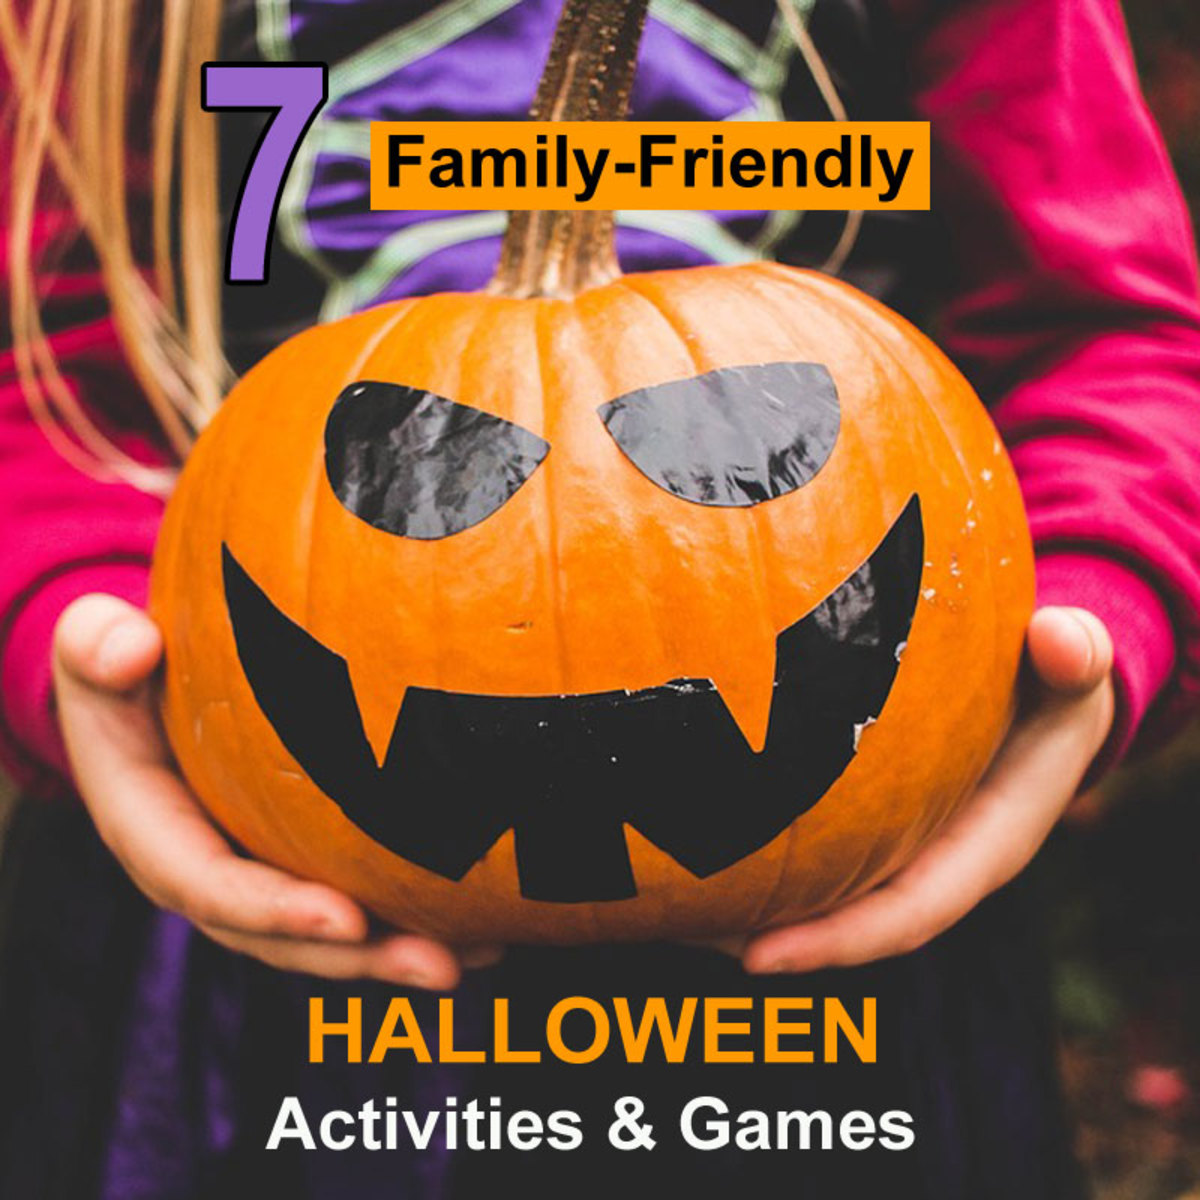 7 Fun Halloween Activities and Games That Are Family-Friendly